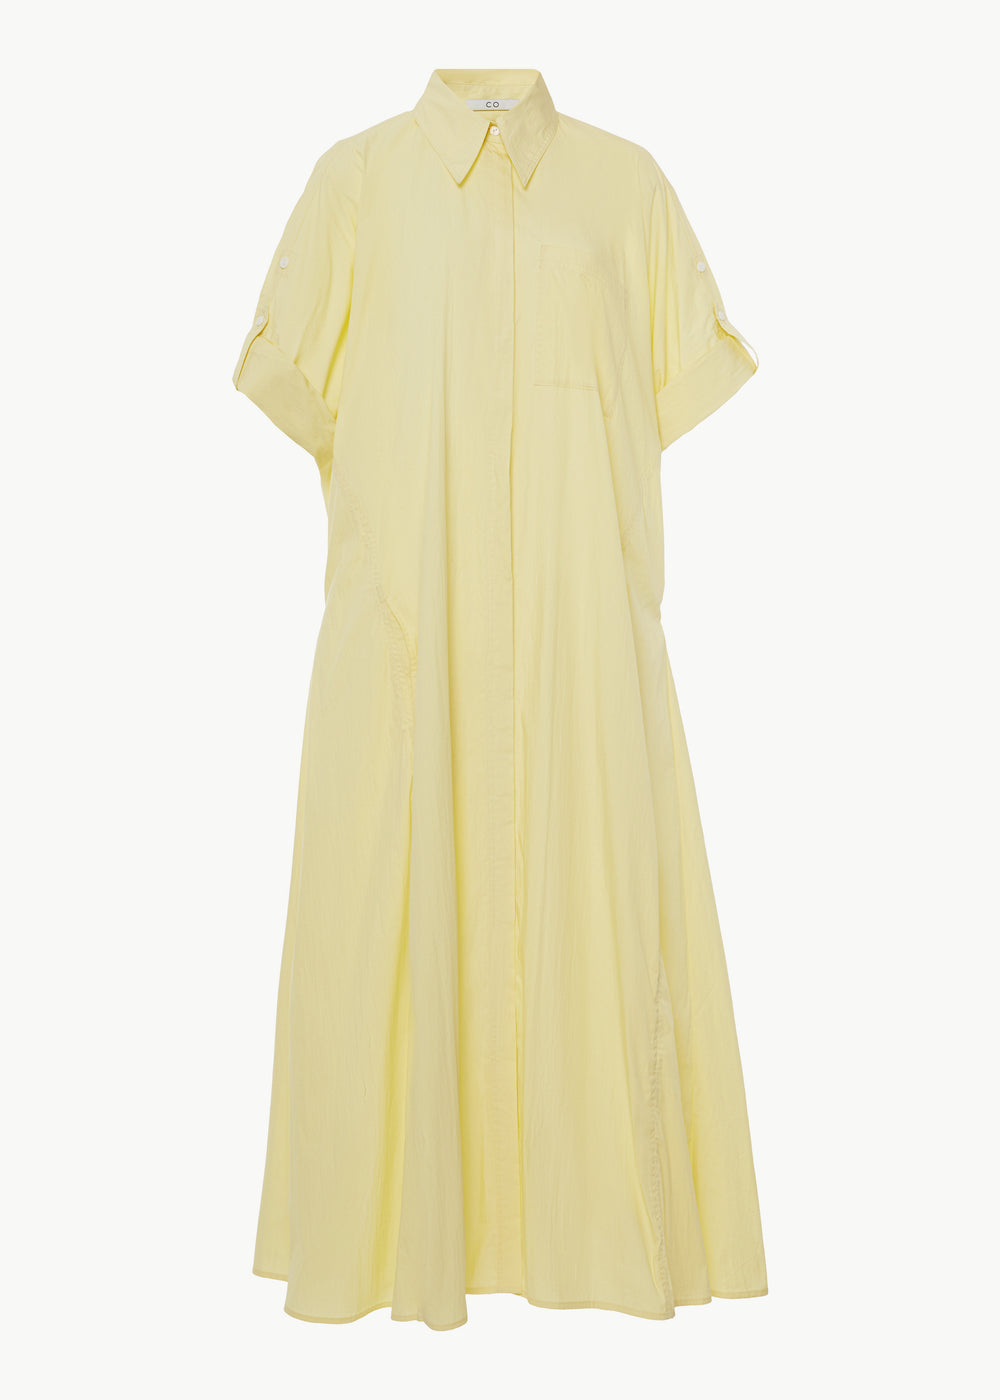 Rolled Sleeve Shirtdress in Cotton Nylon - Yellow - CO Collections